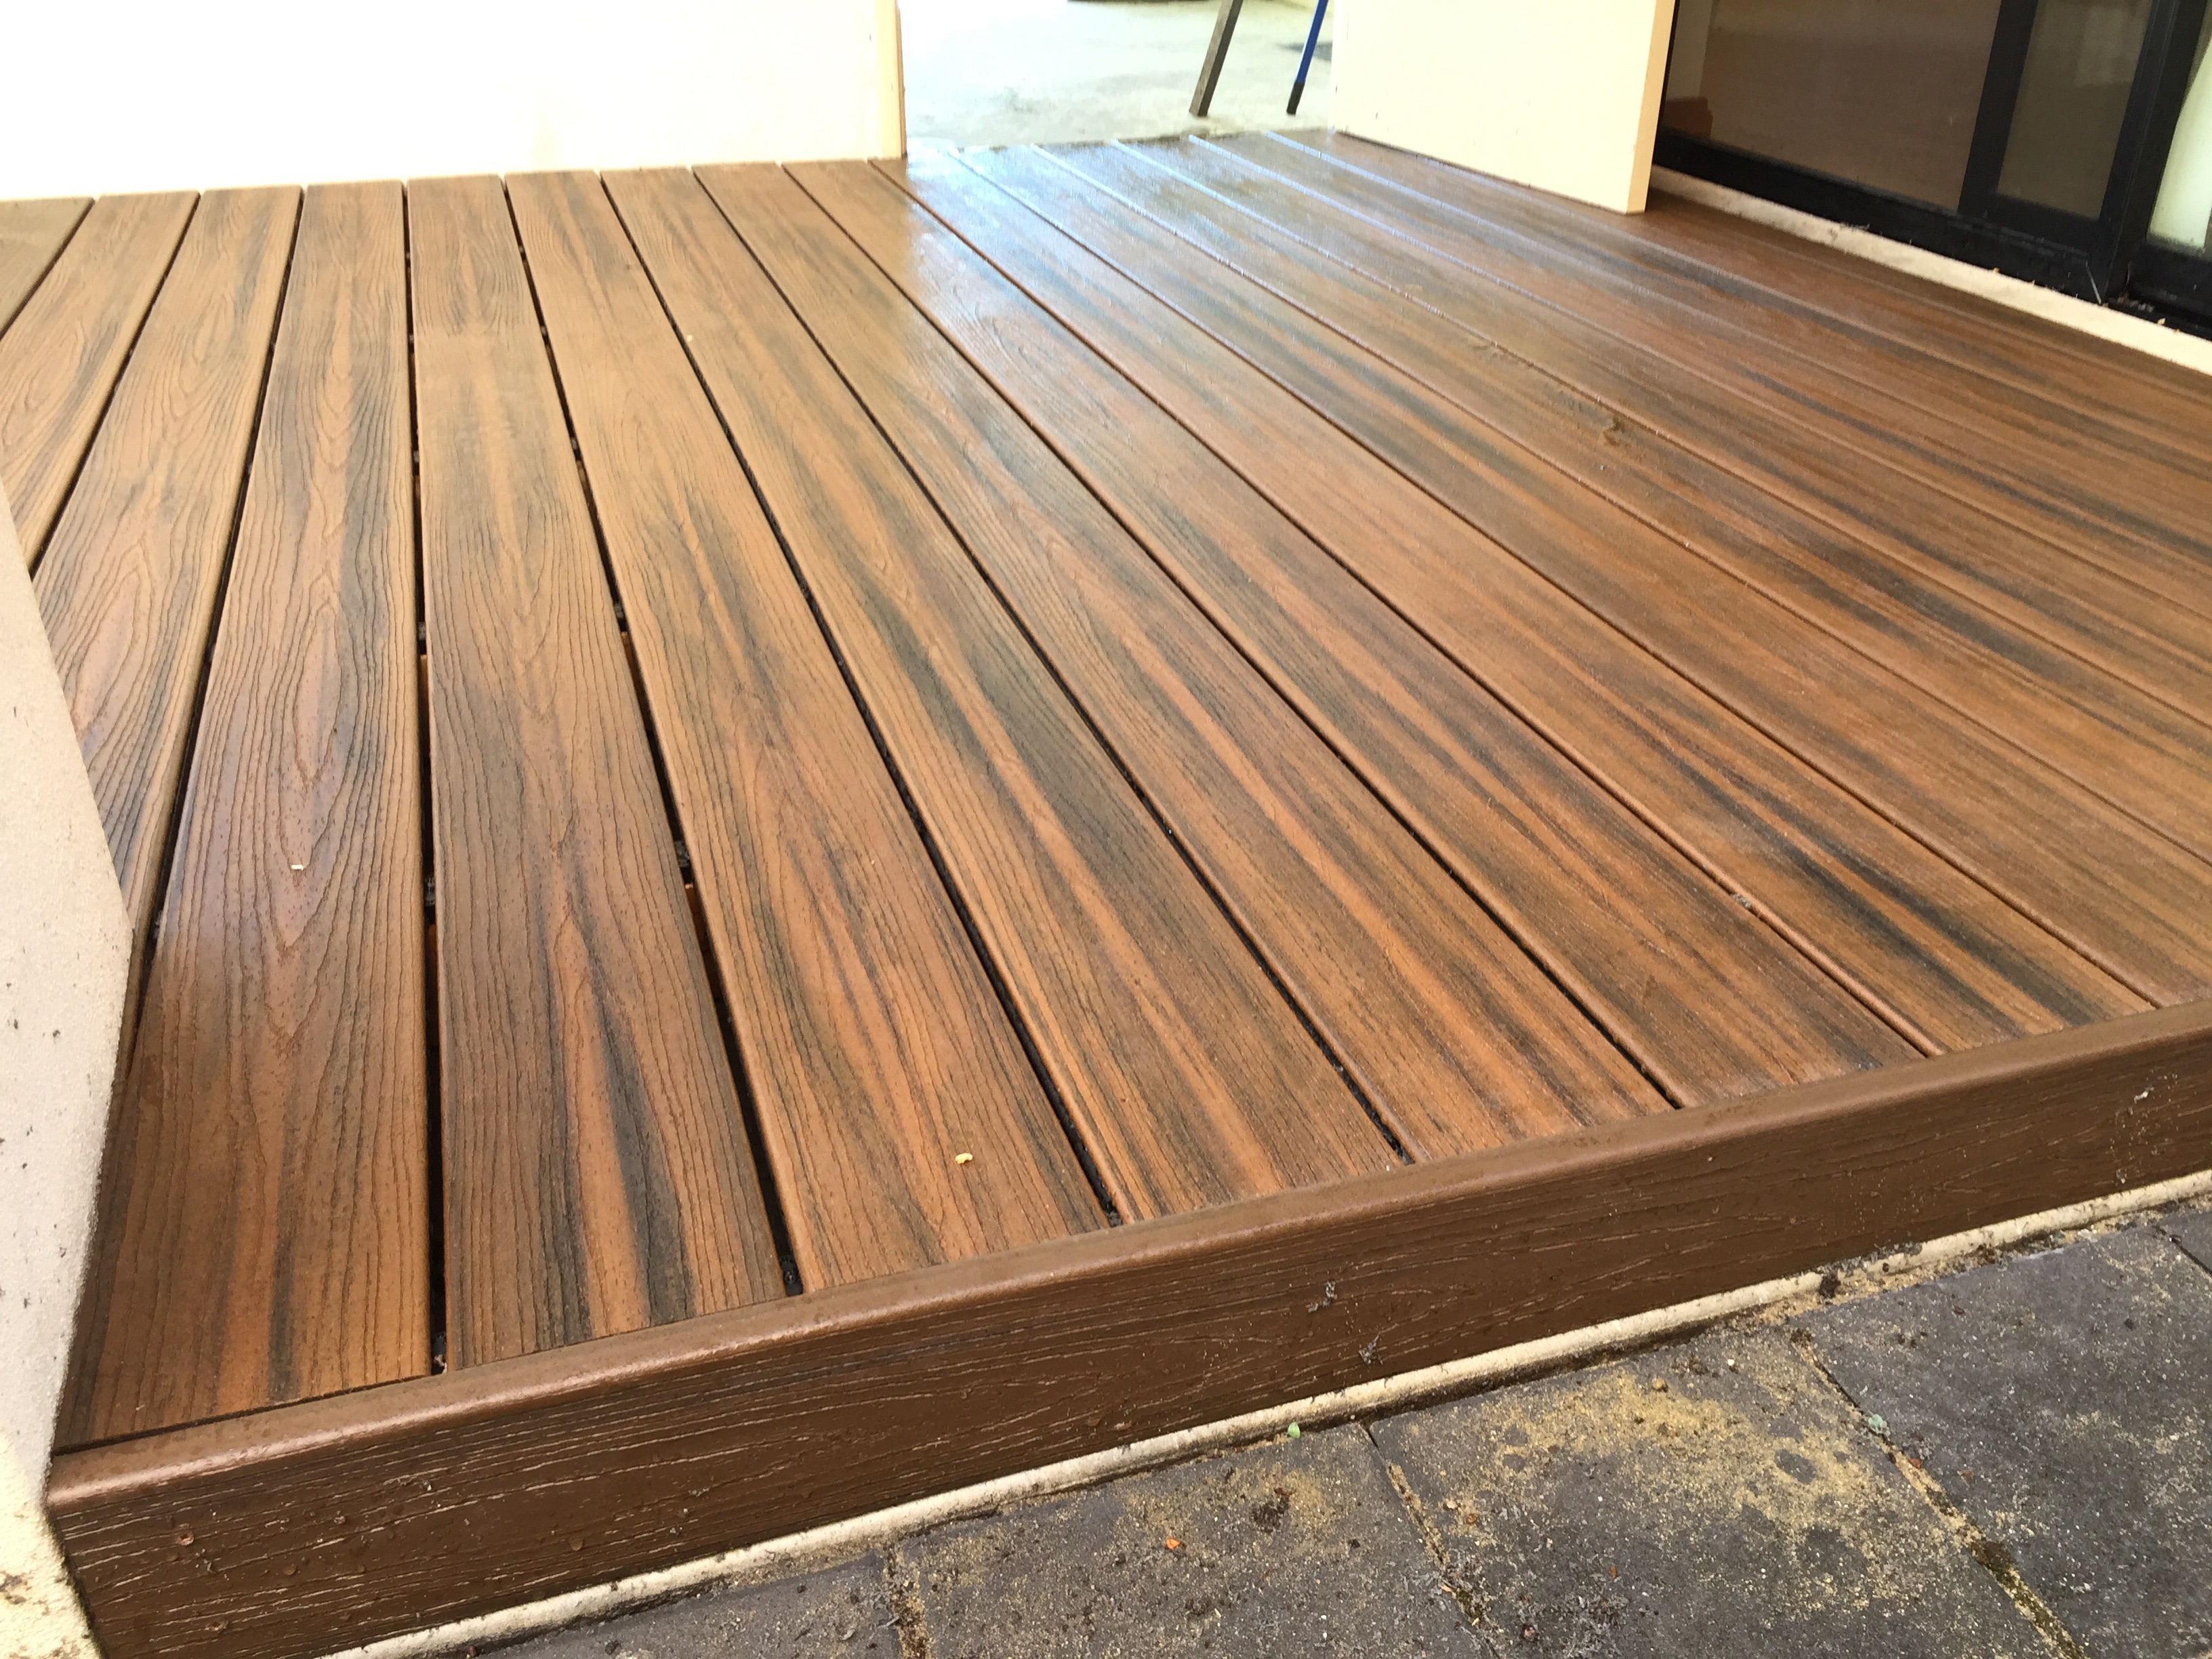 Trex deck boards composite decking perth for Composite decking boards